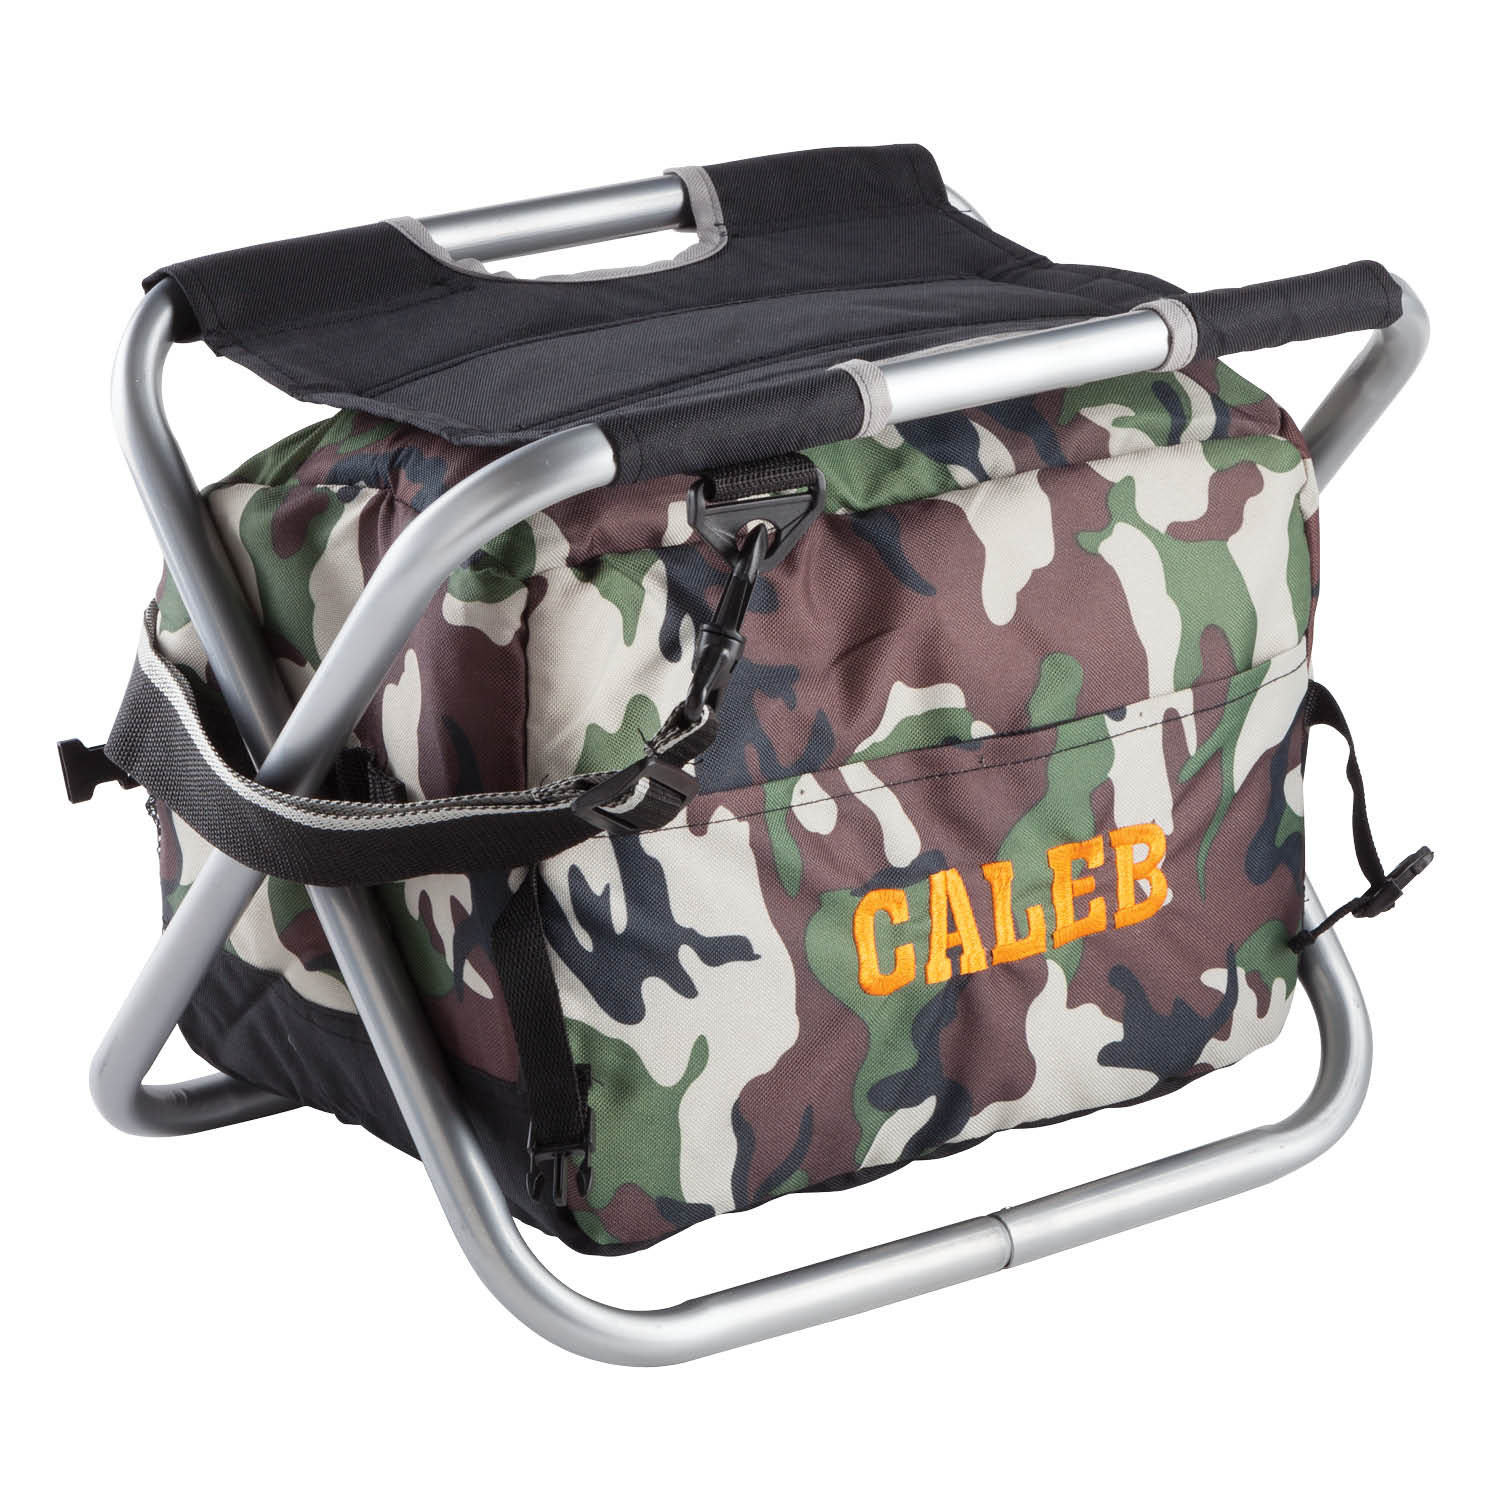 Personalized Camouflage Spectator Cooler Chair